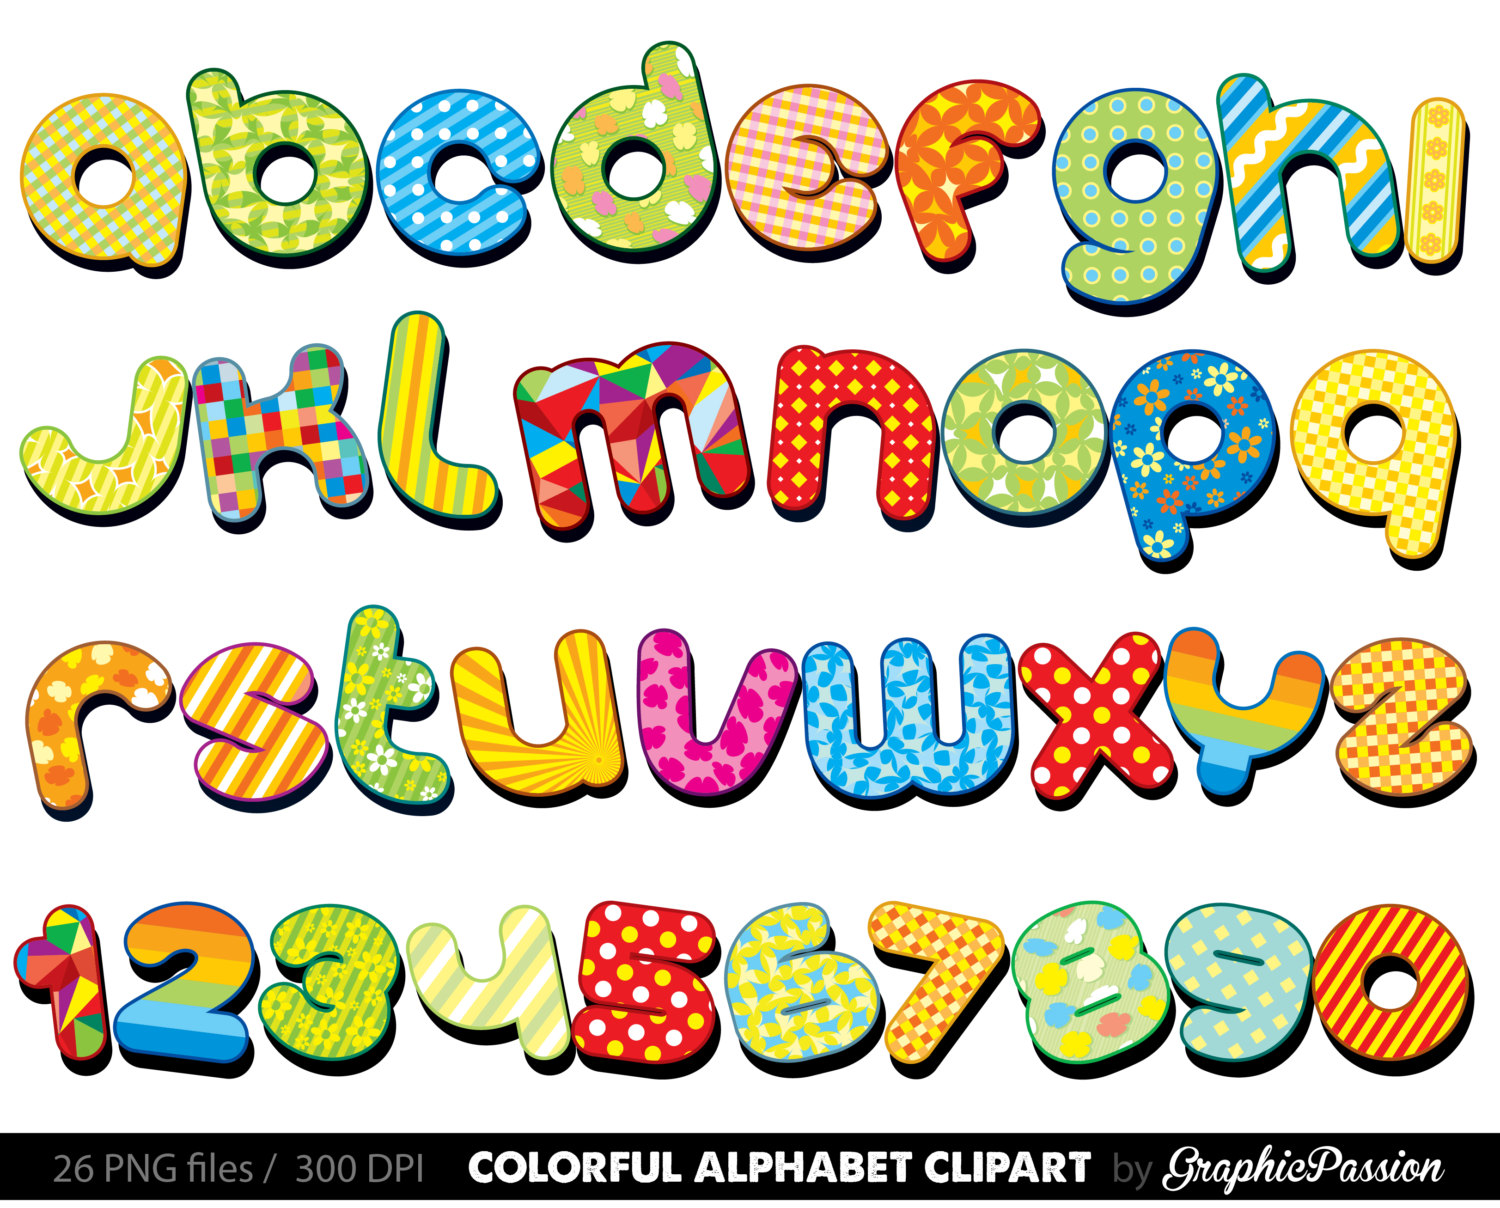 Abc images download best. Free downloadable clipart of individual alphabet letters